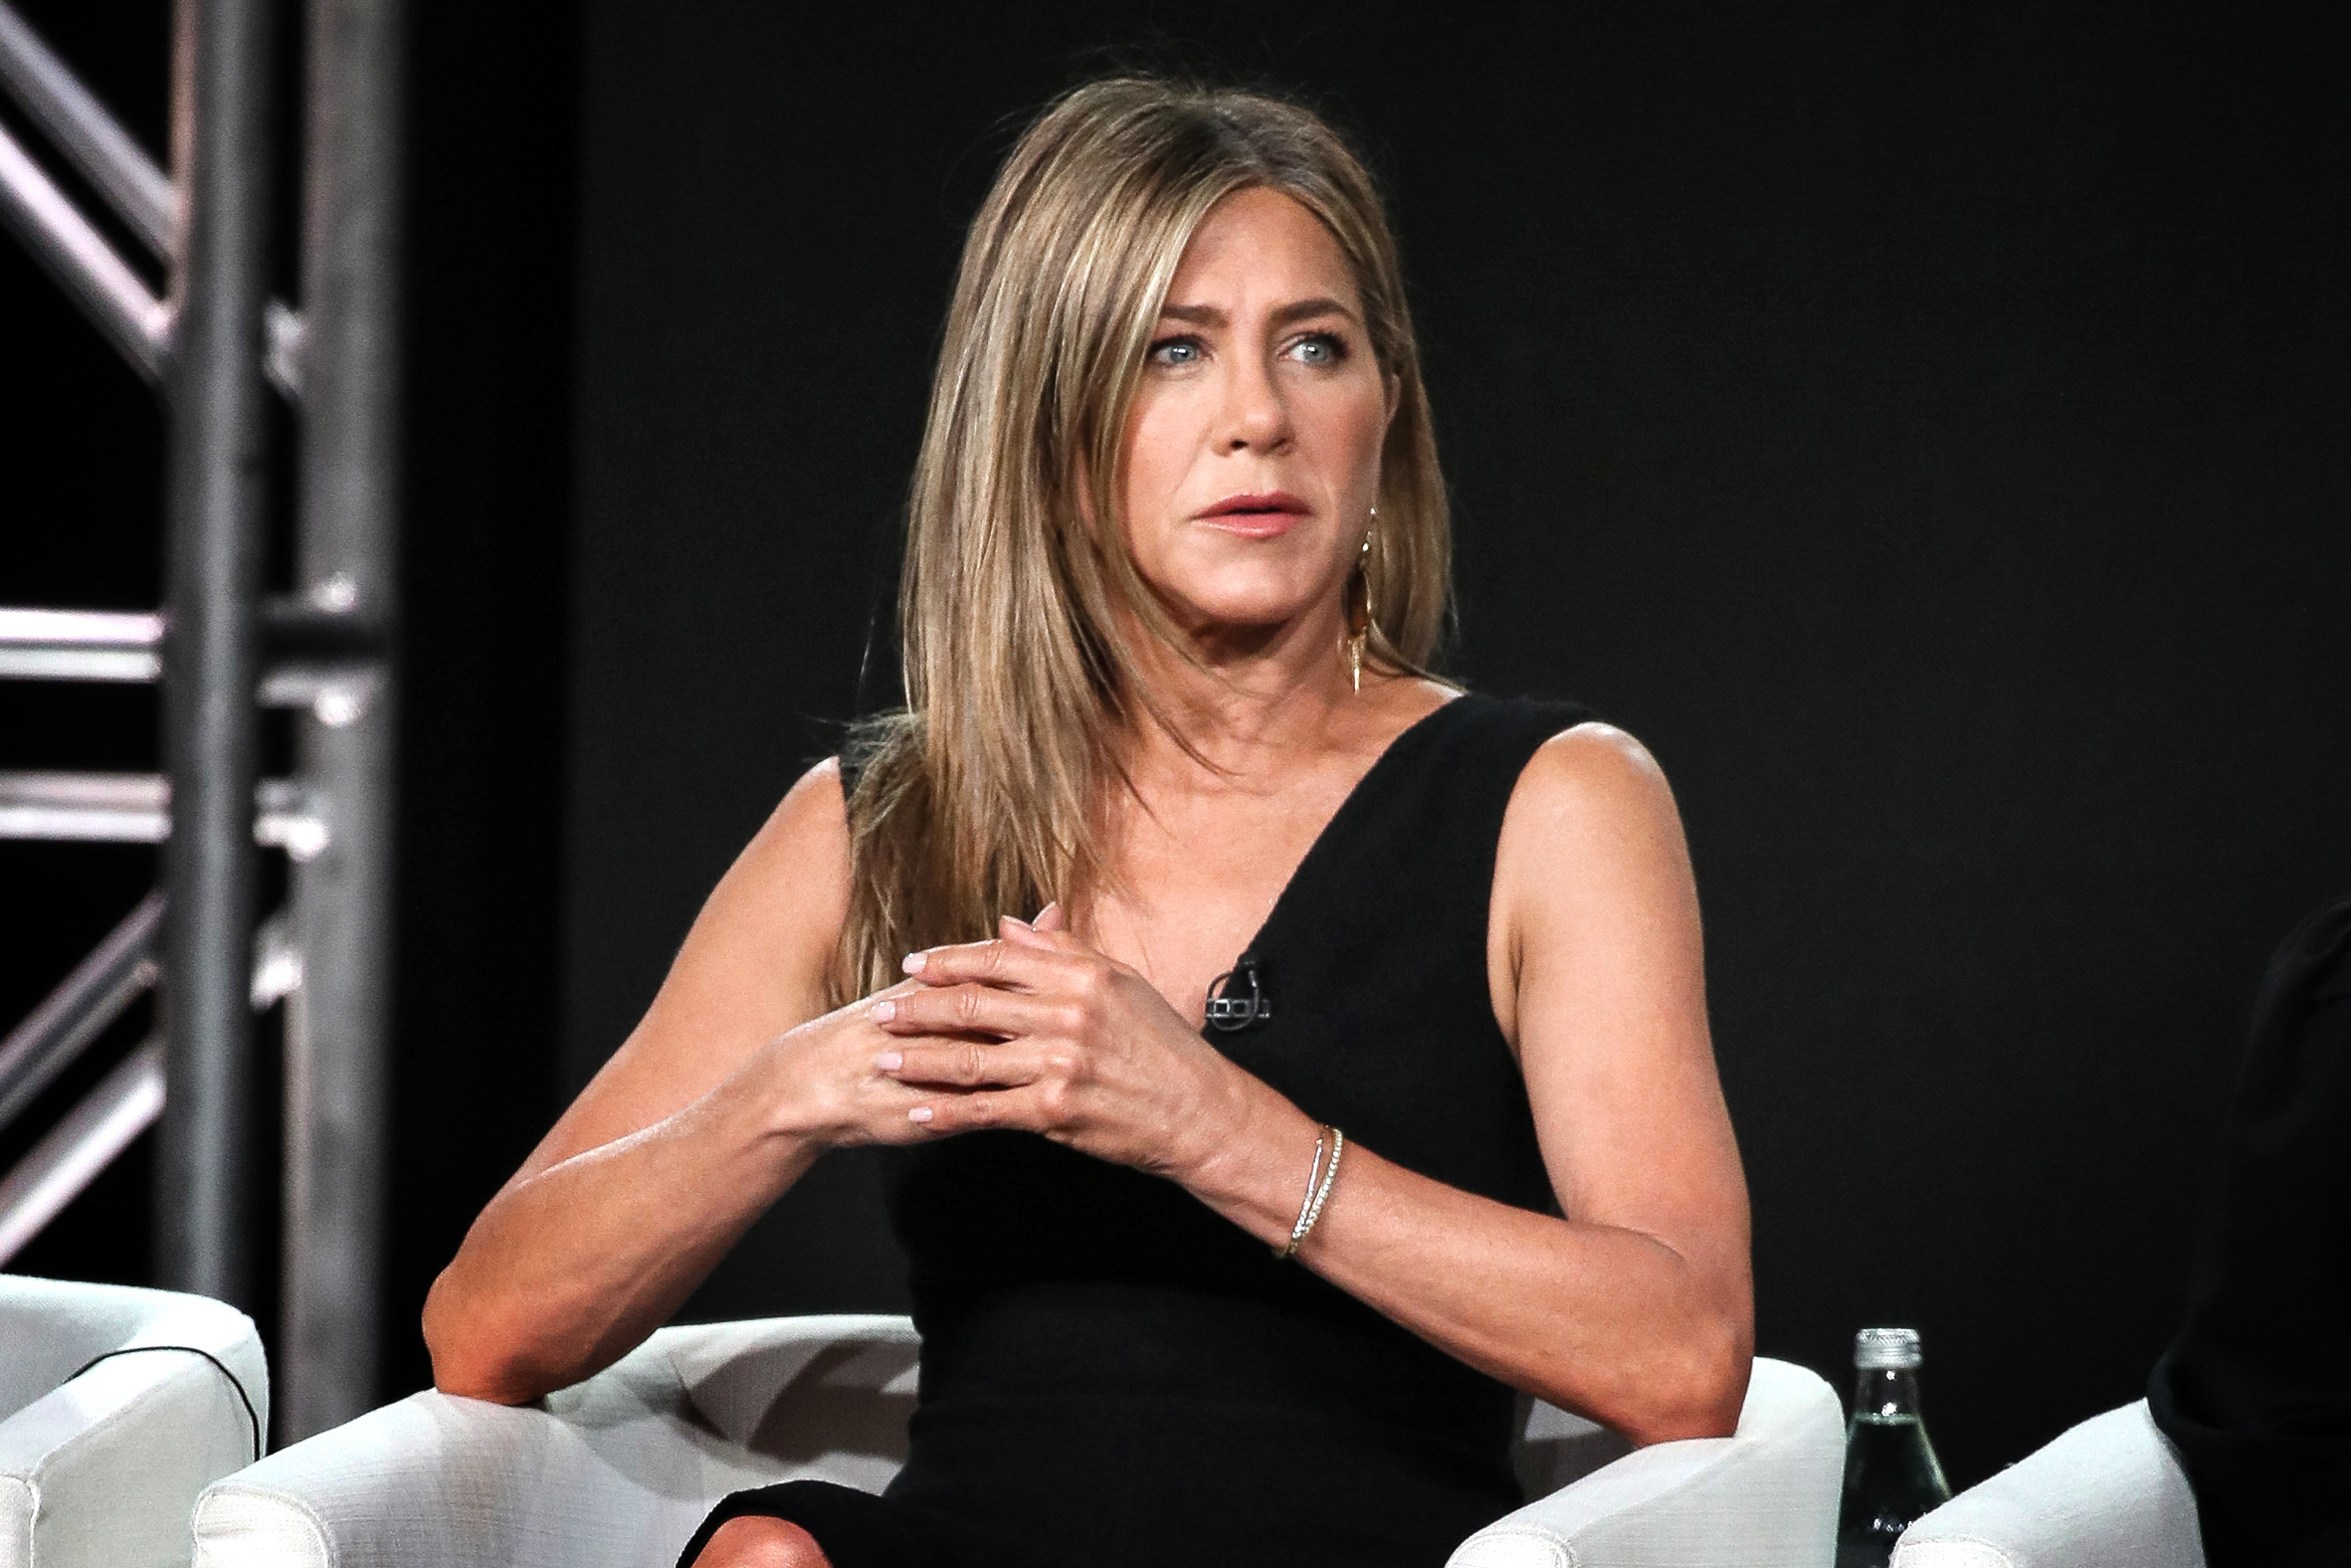 Jennifer Aniston says 'anti-vaxxers' are no longer in her 'weekly routine'